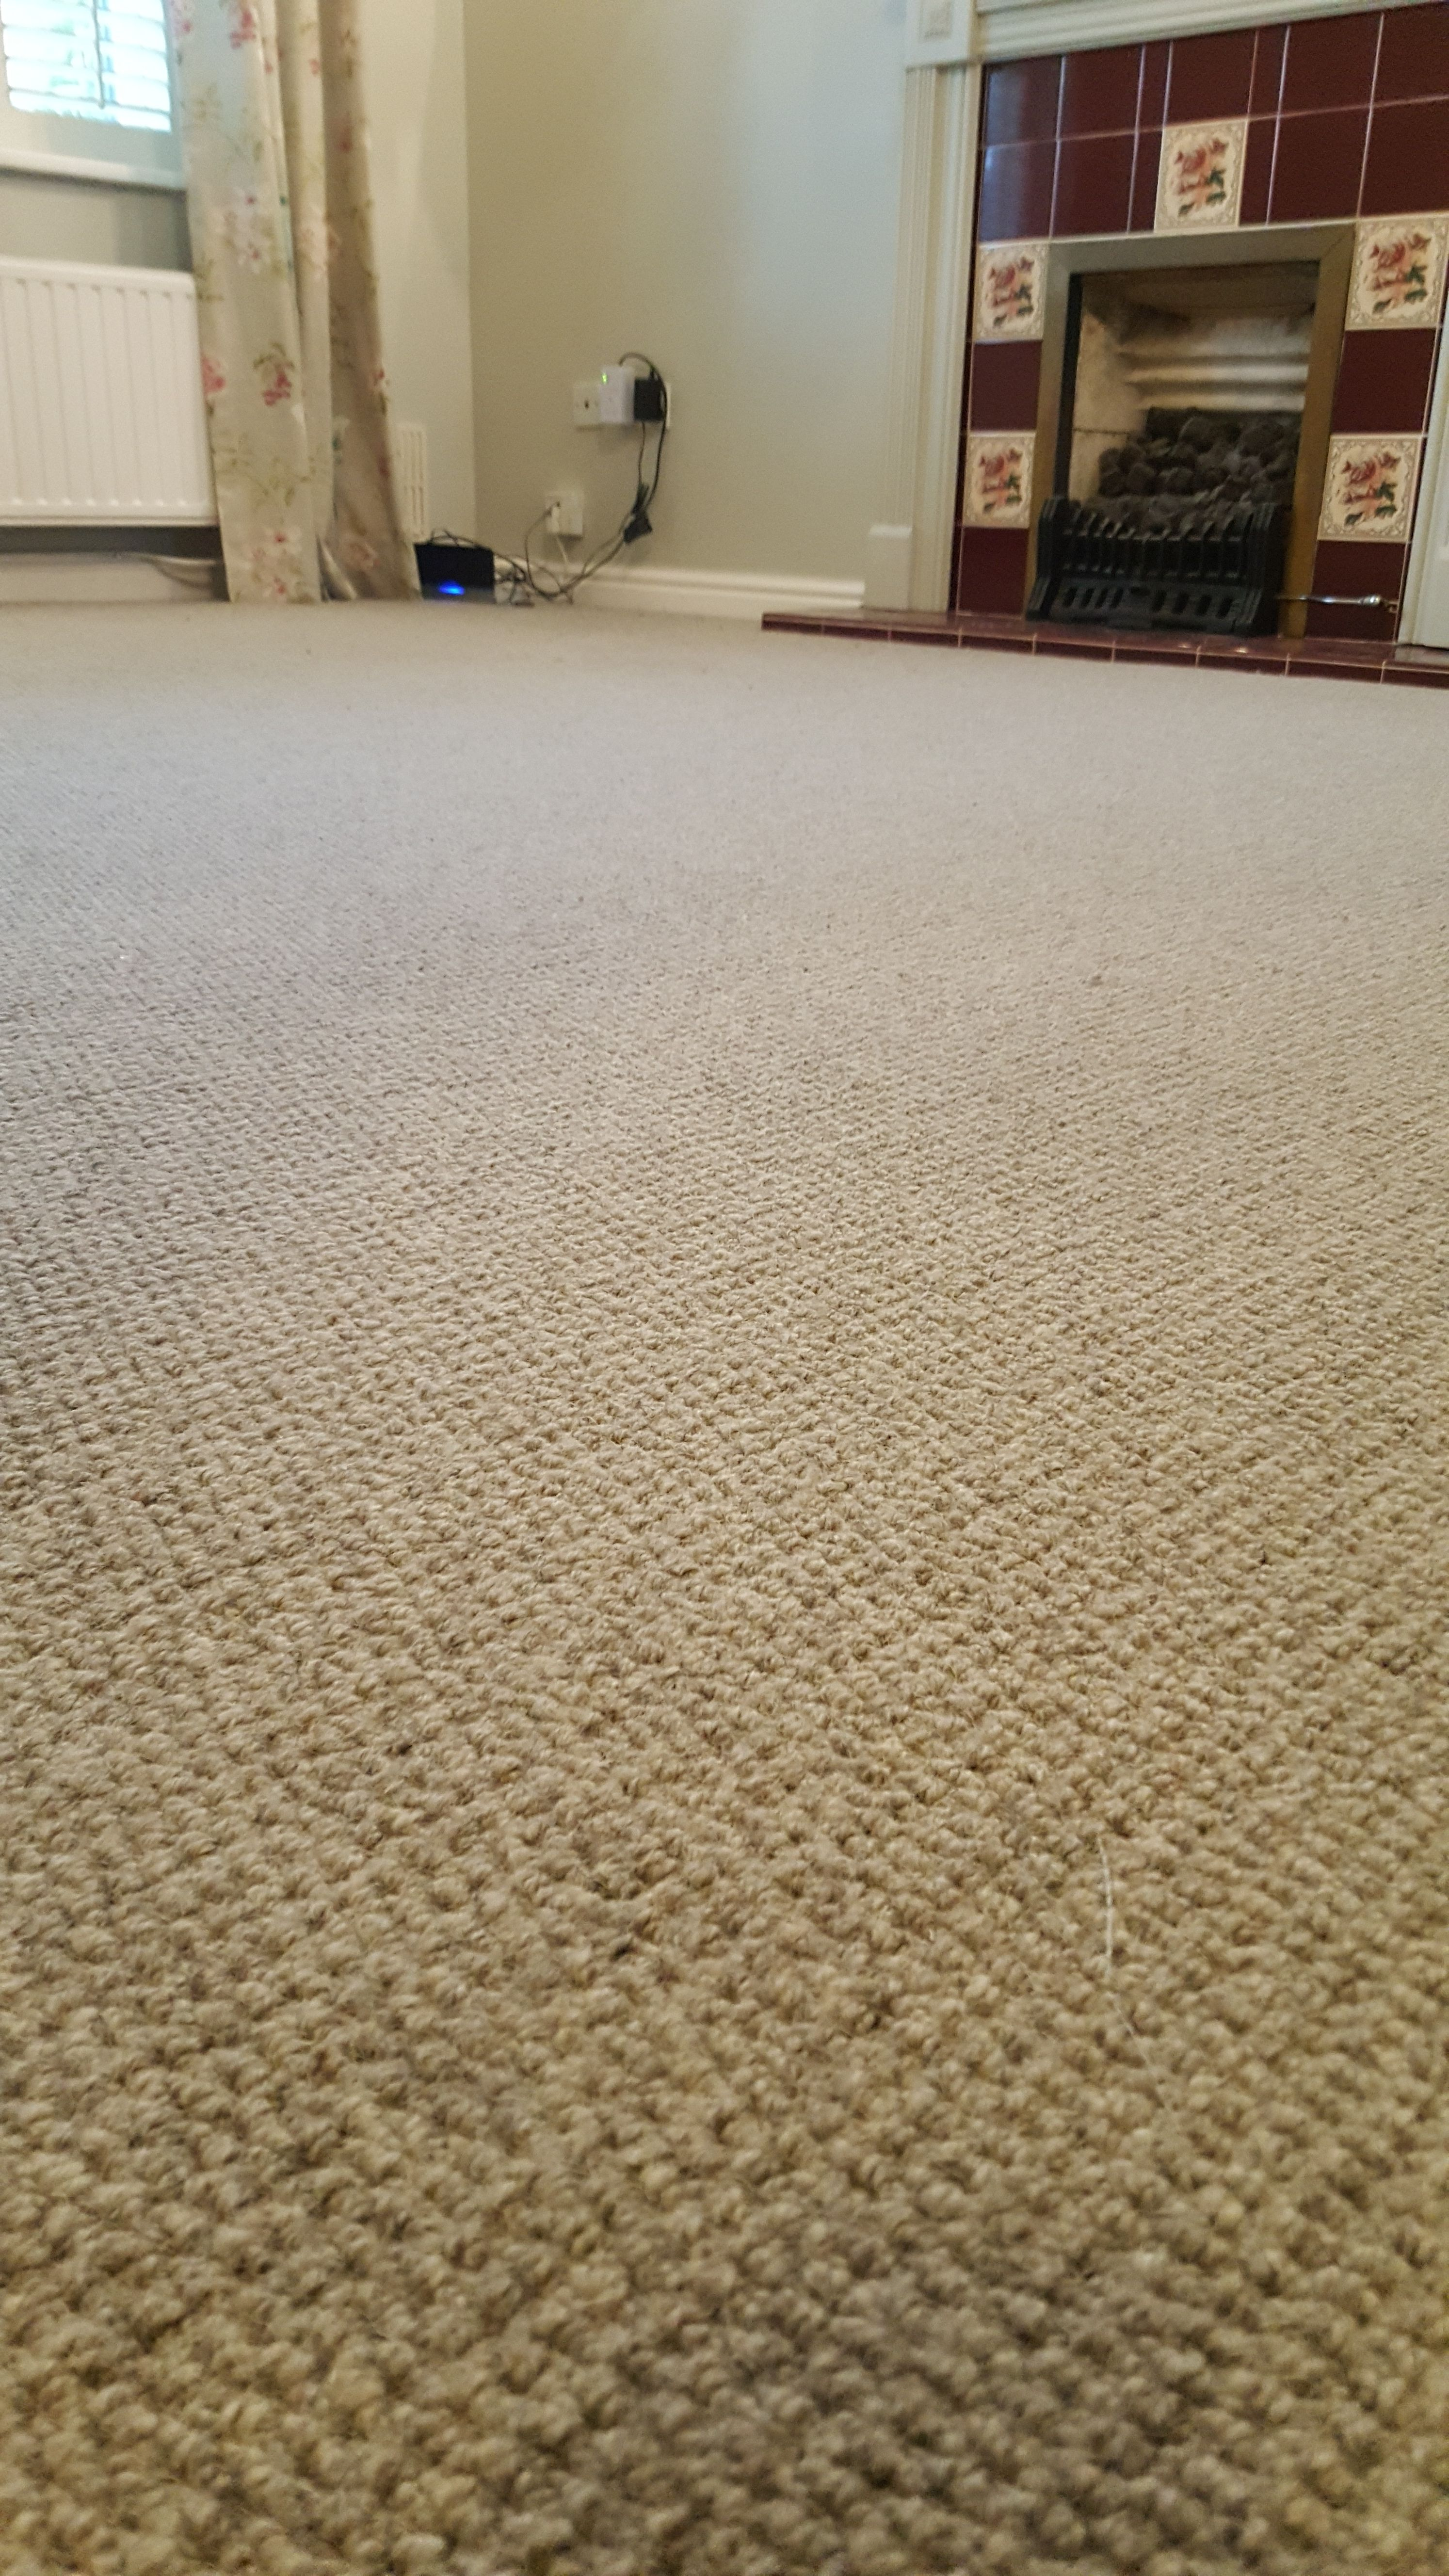 100 Wool Berber In A Self Pattern Design In Grey Fitted To A Lounge On Top Of An 11mm Pu Underlay This Helps The Carpet To Feel Vinyl Flooring Carpet Design